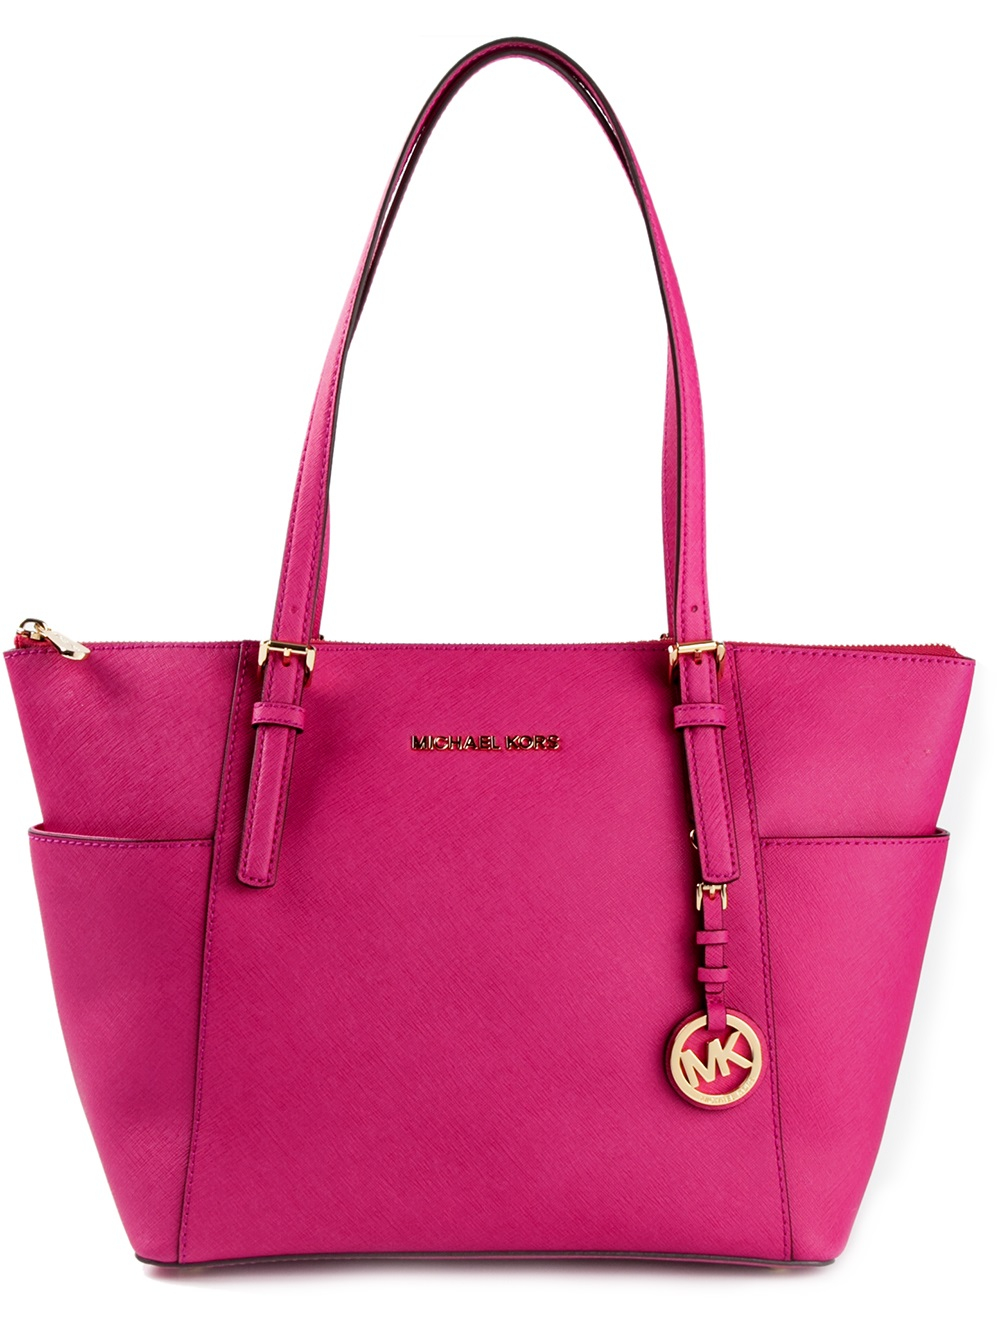 michael michael kors 39 jet set 39 shopper tote in pink lyst. Black Bedroom Furniture Sets. Home Design Ideas